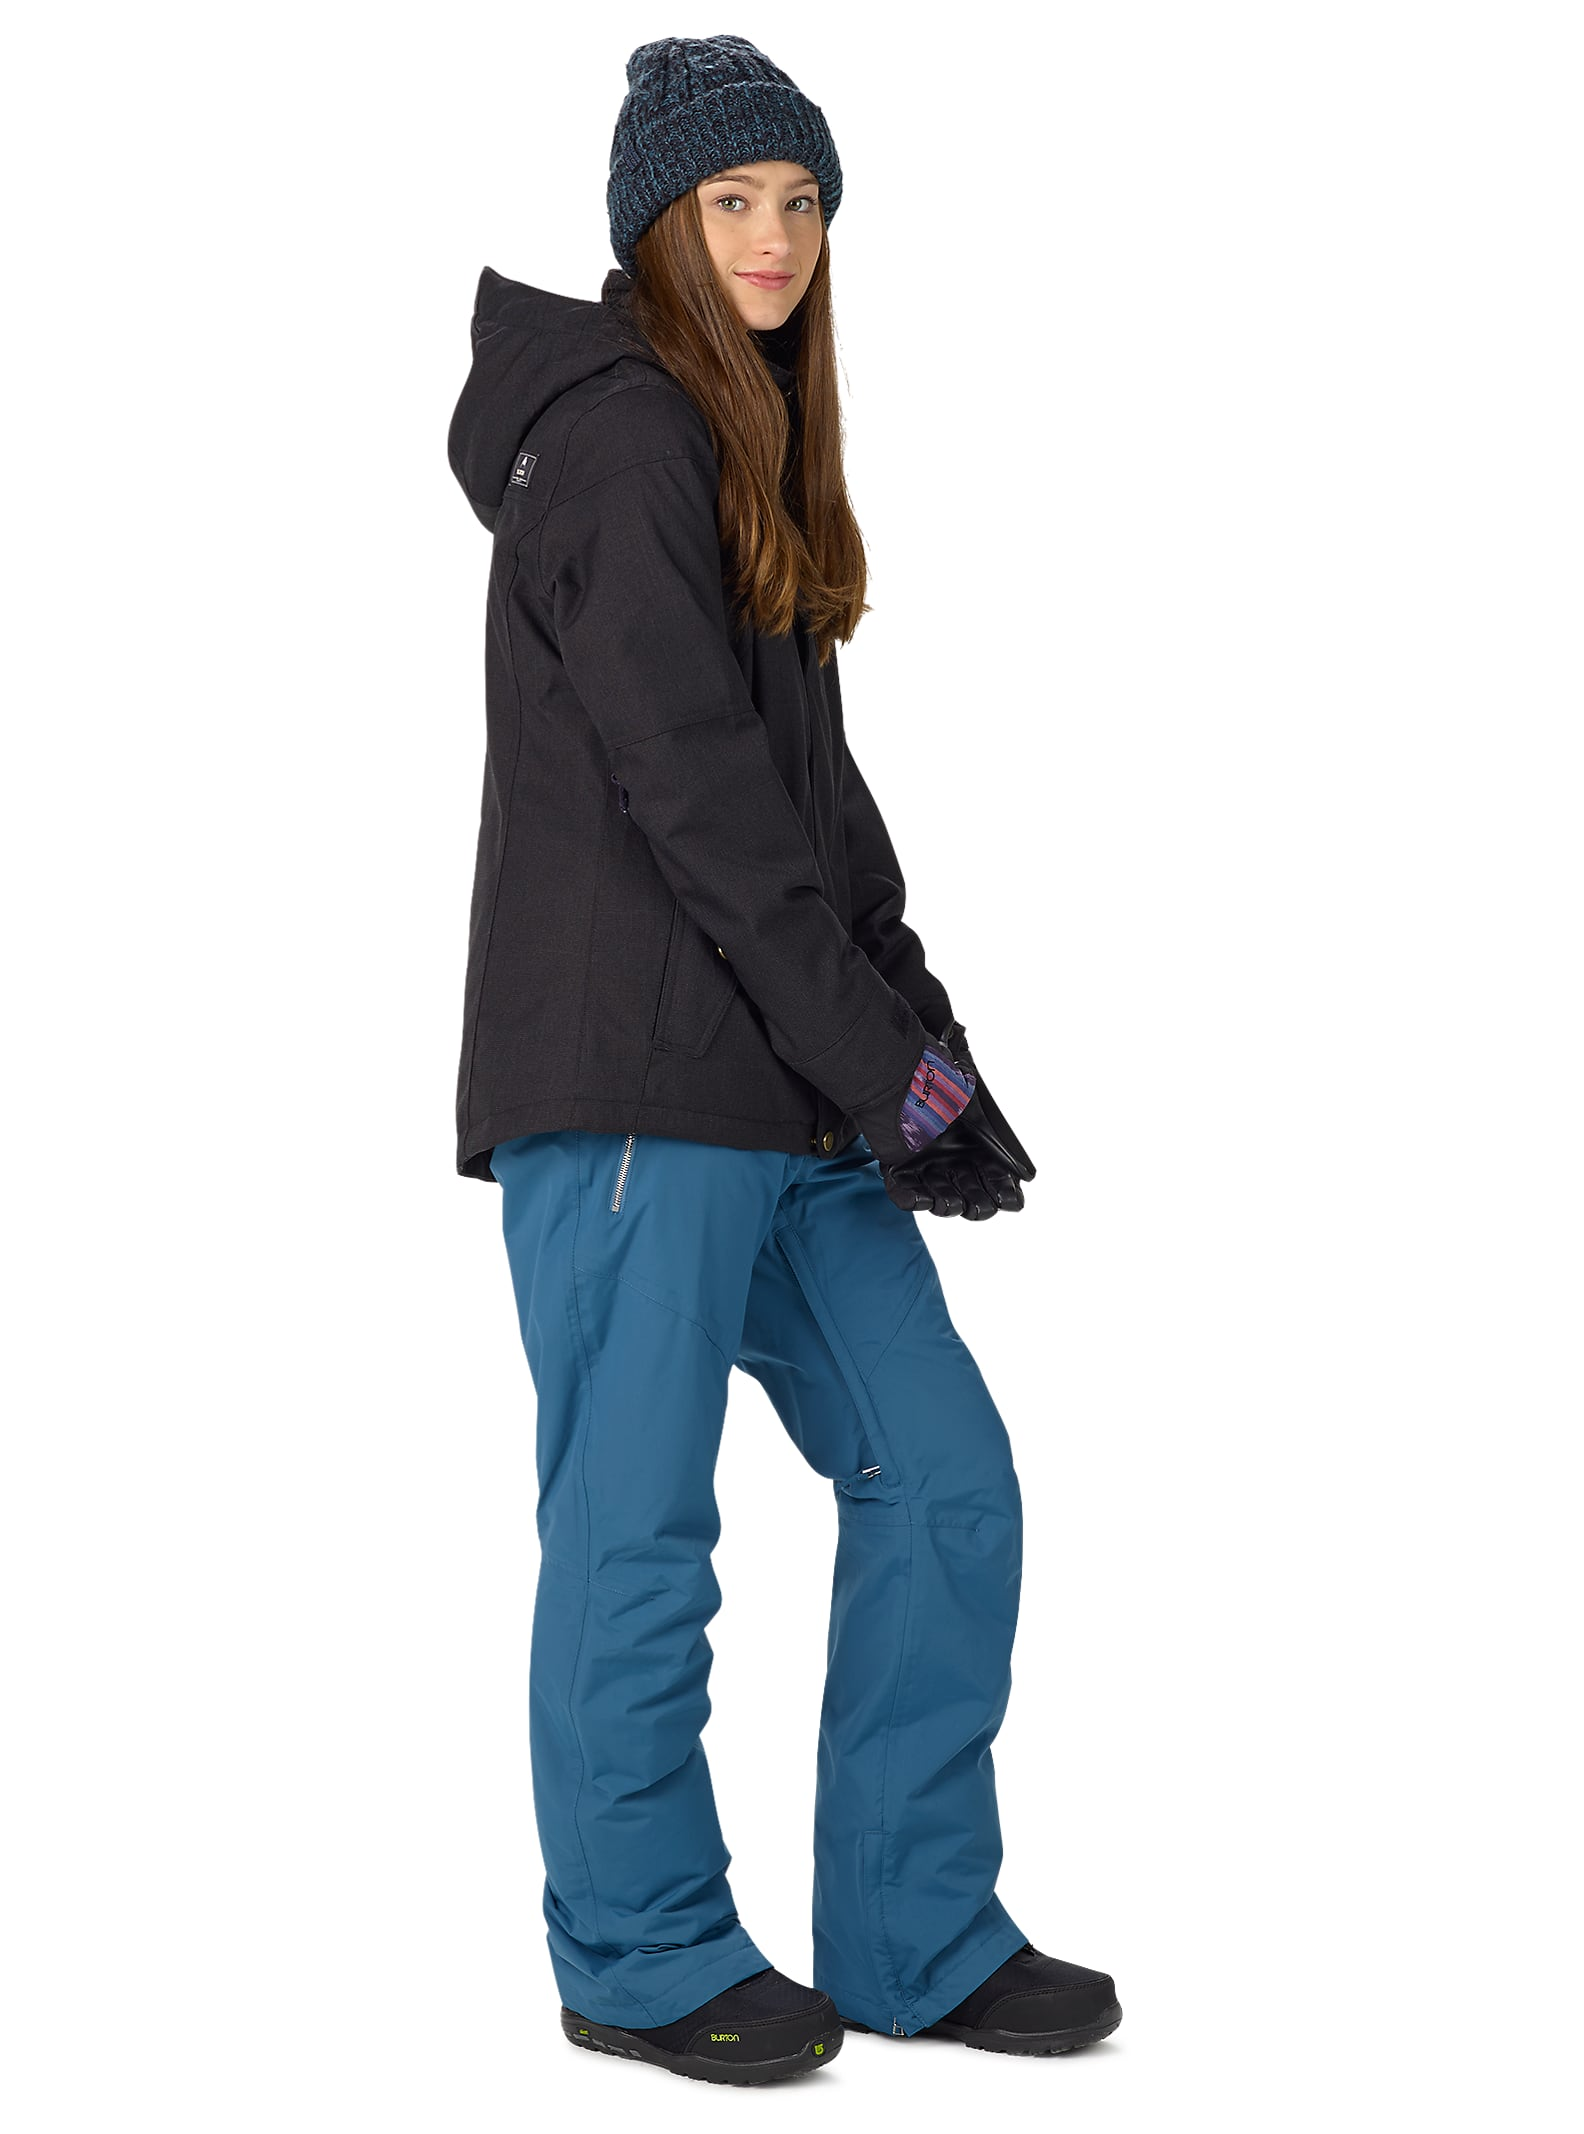 Burton Jet Set Jacket Snowboards Winter 16 Jeans Pant Woman 7 9 Mocca